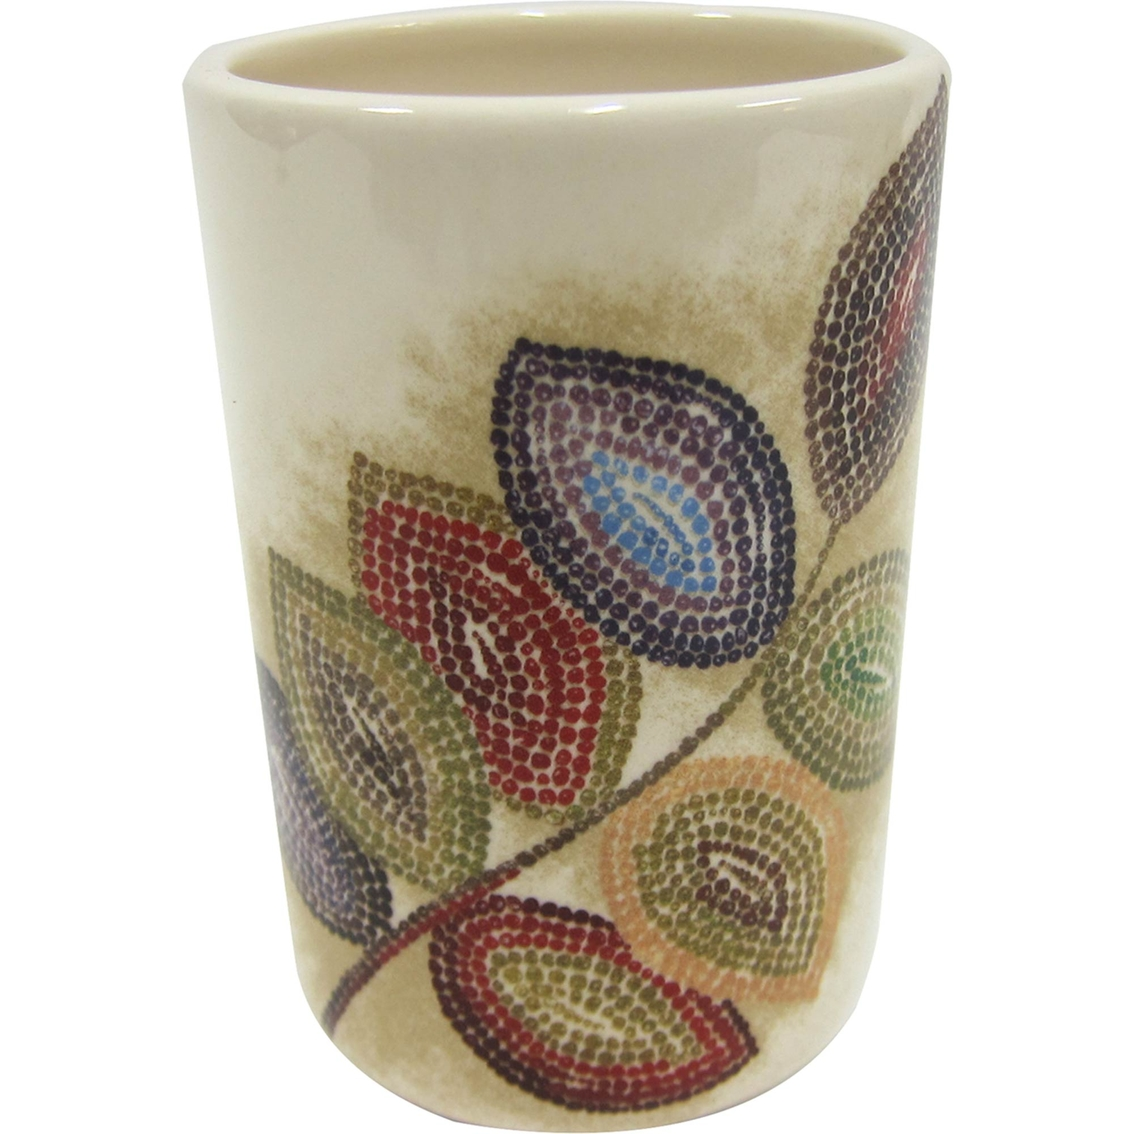 Croscill Mosaic Leaves Tumbler Bath Accessories Household Shop The Exchange